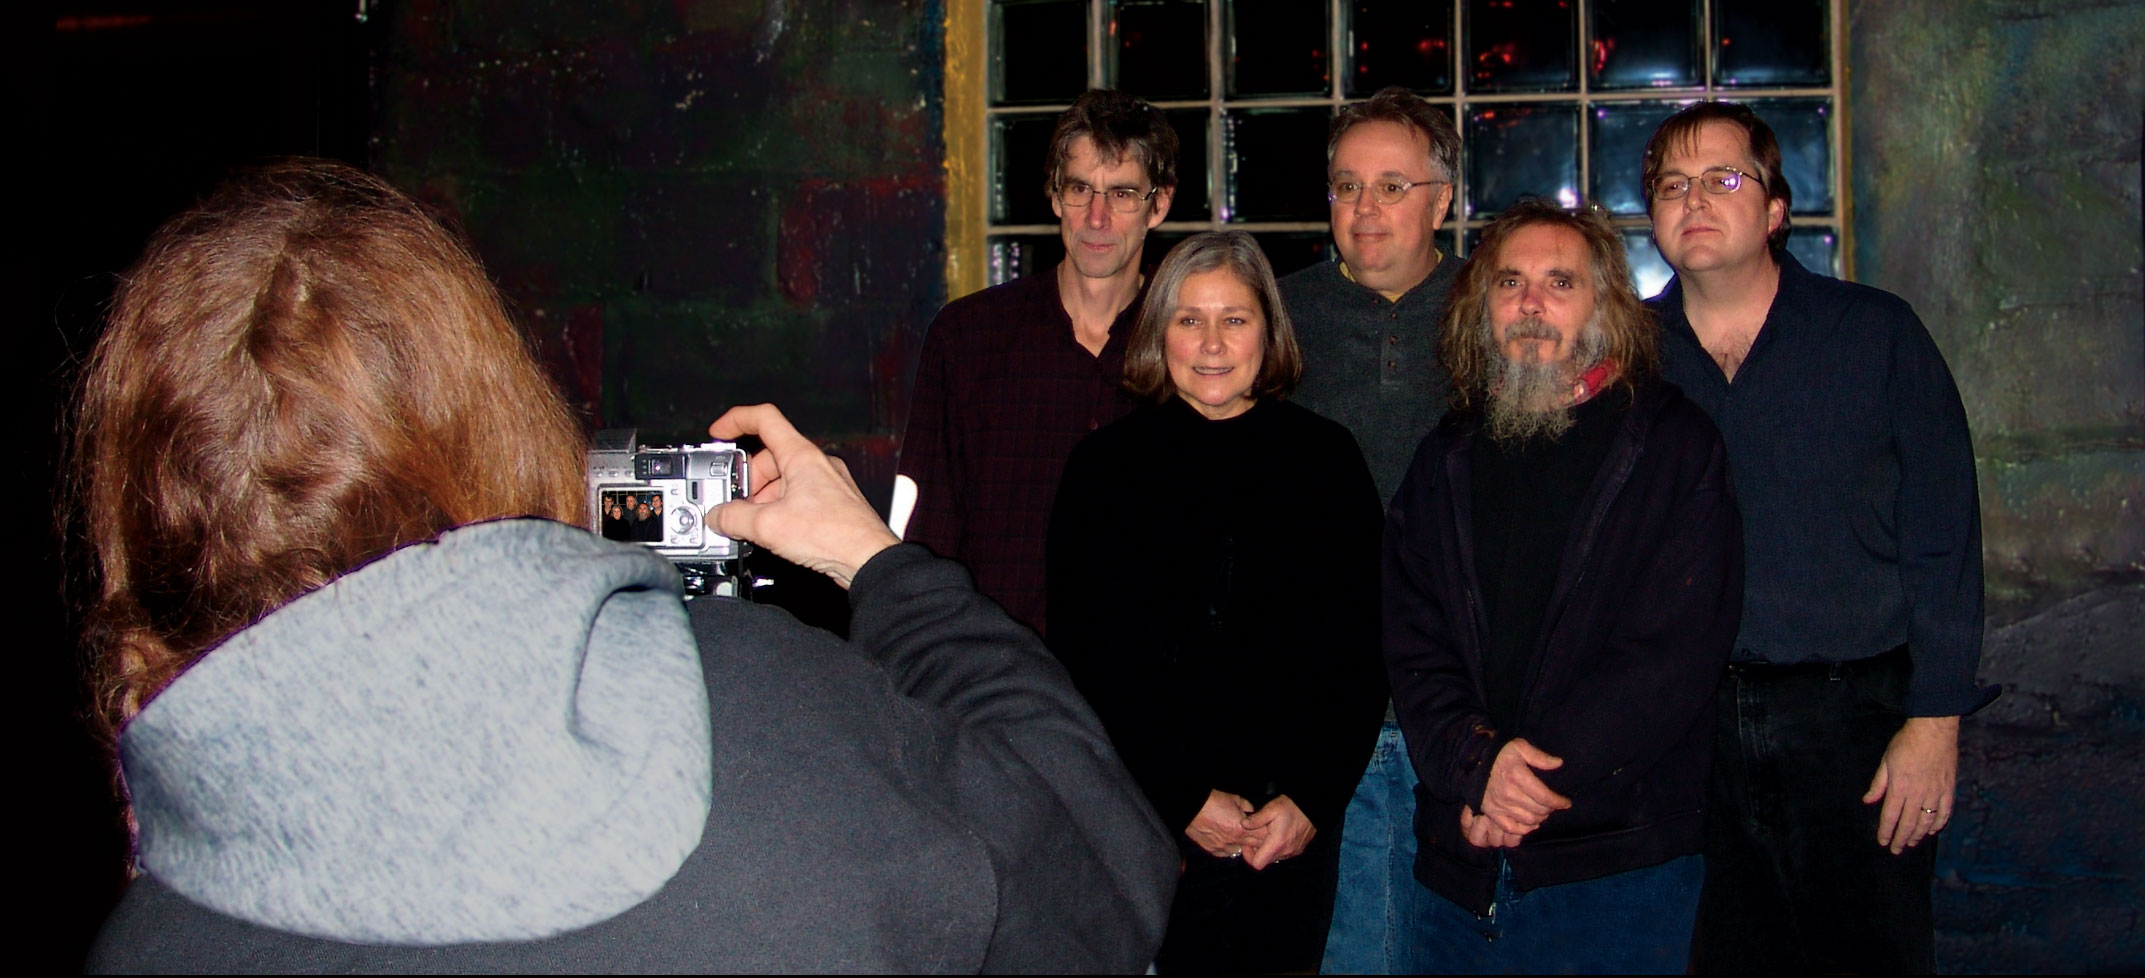 Shelley Valchovic takes promo shot of Margaret Explosion with Pete LaBonne at Little Theatre Café.